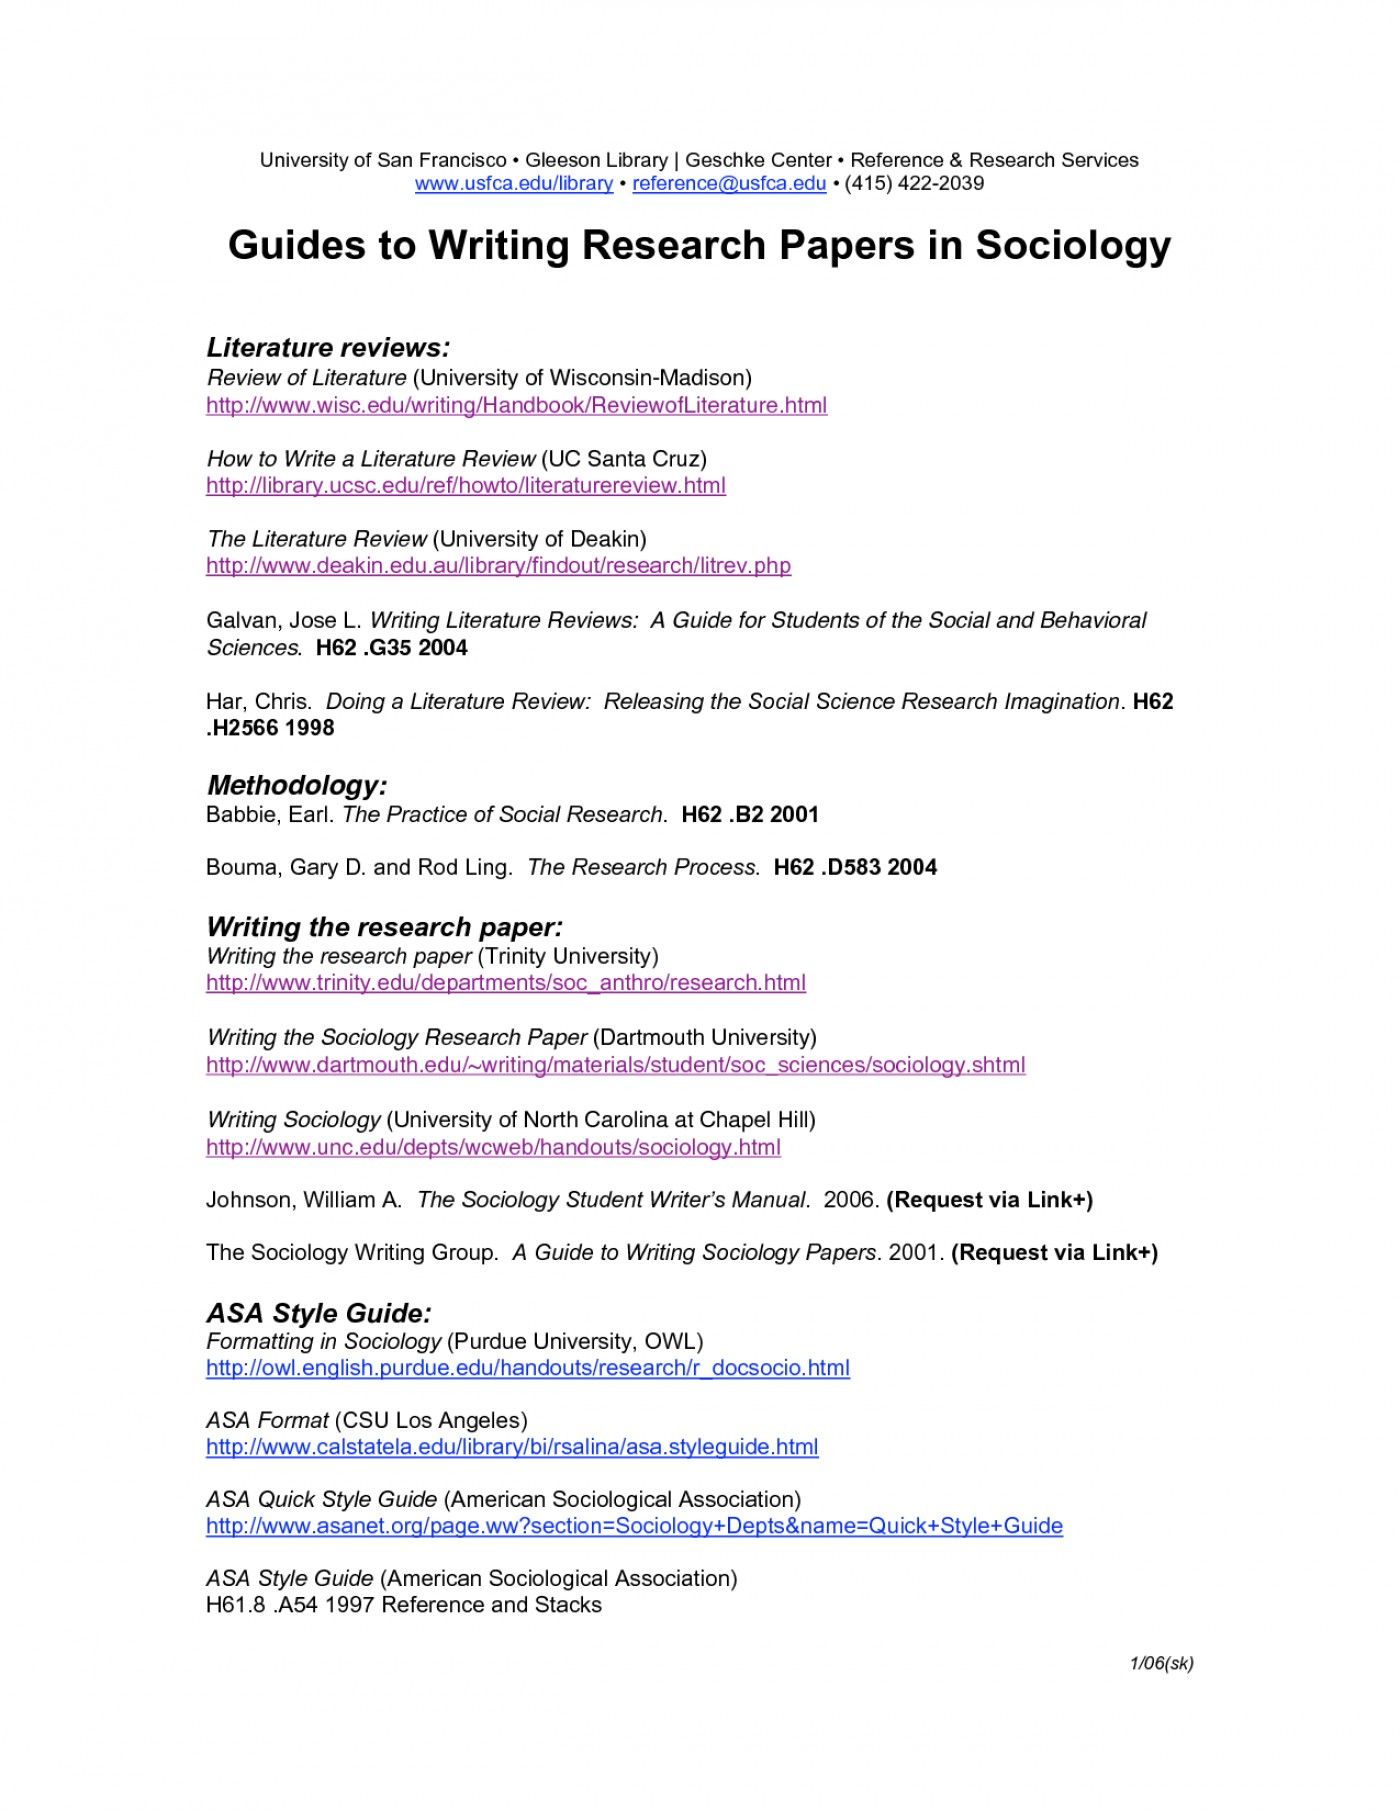 026 Asa Format Research Paper Example Sample For Sociology 135604 Singular 1400